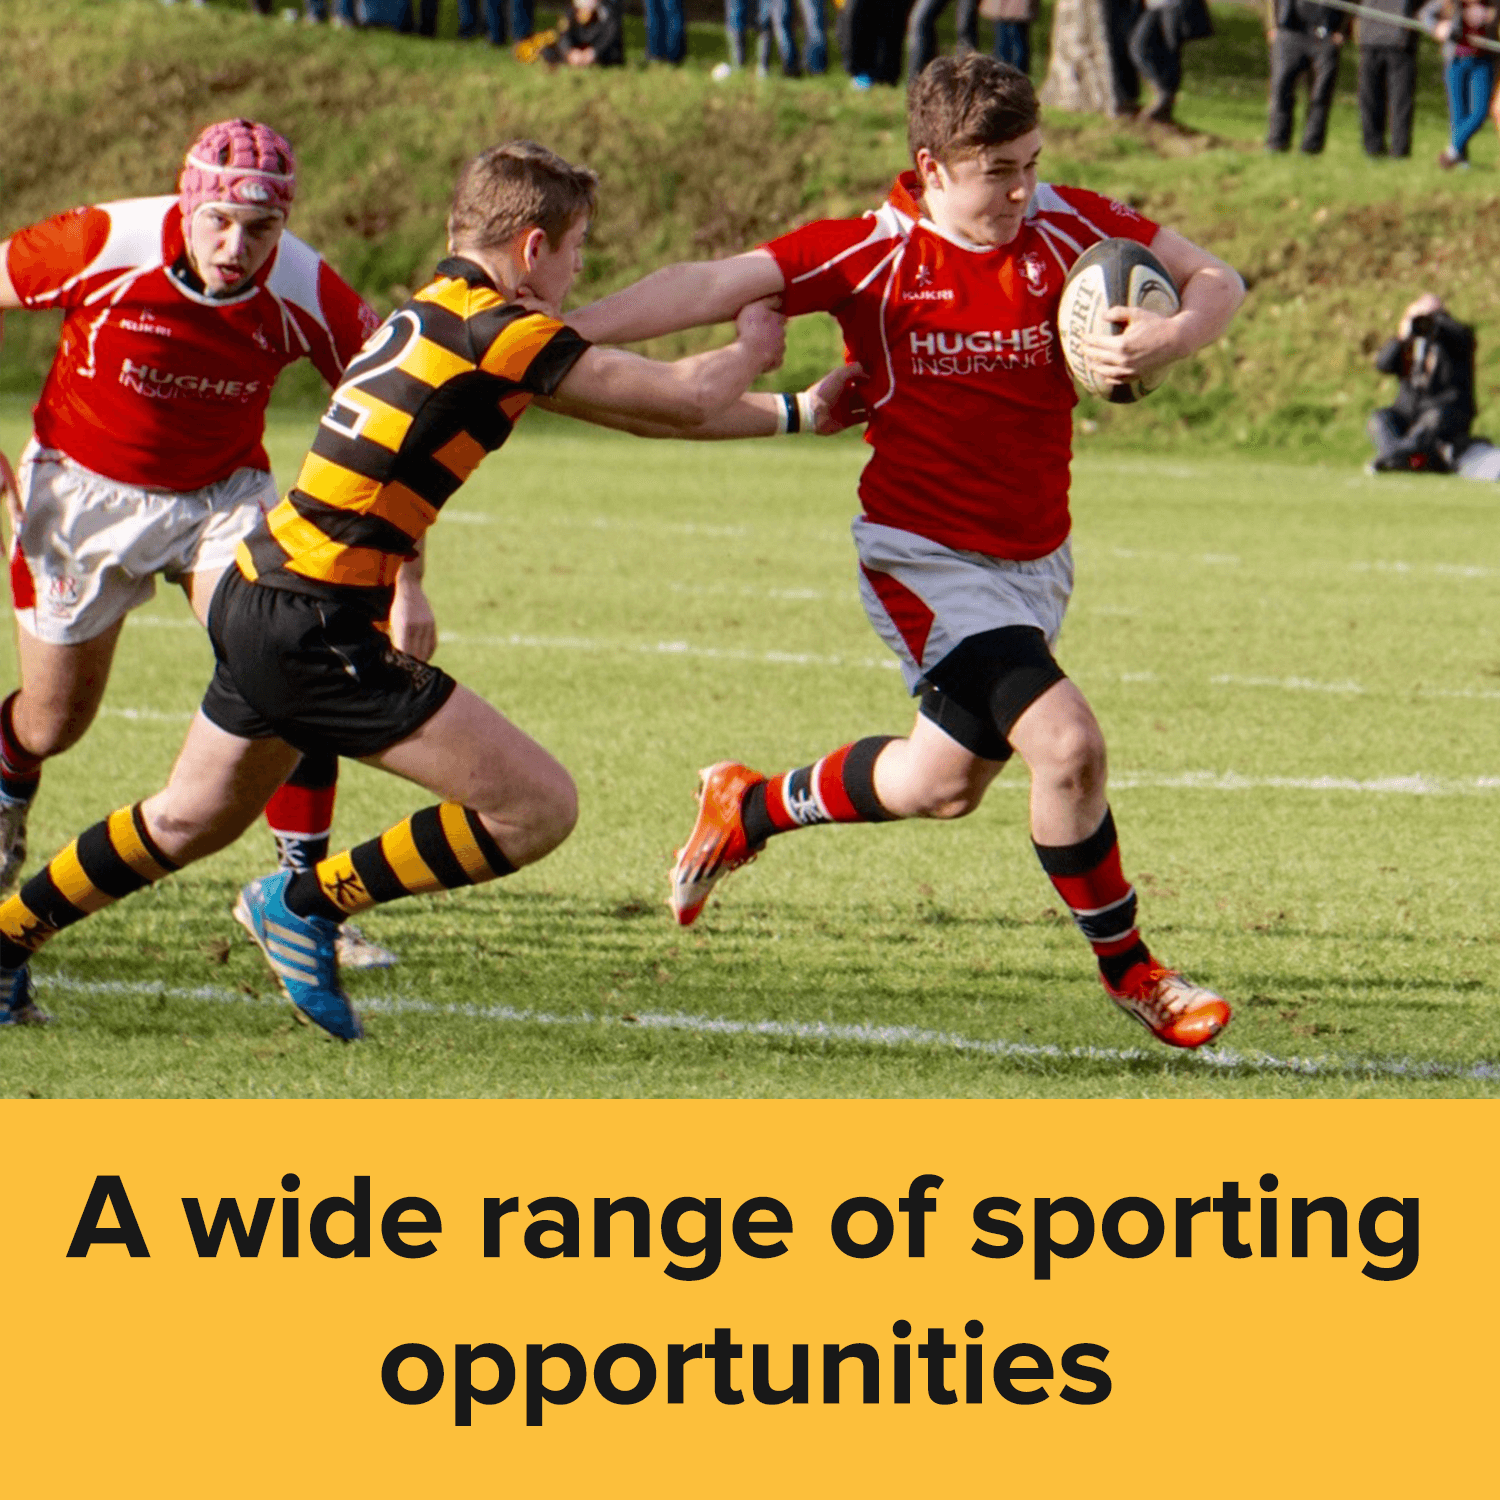 A wide range of sporting opportunities